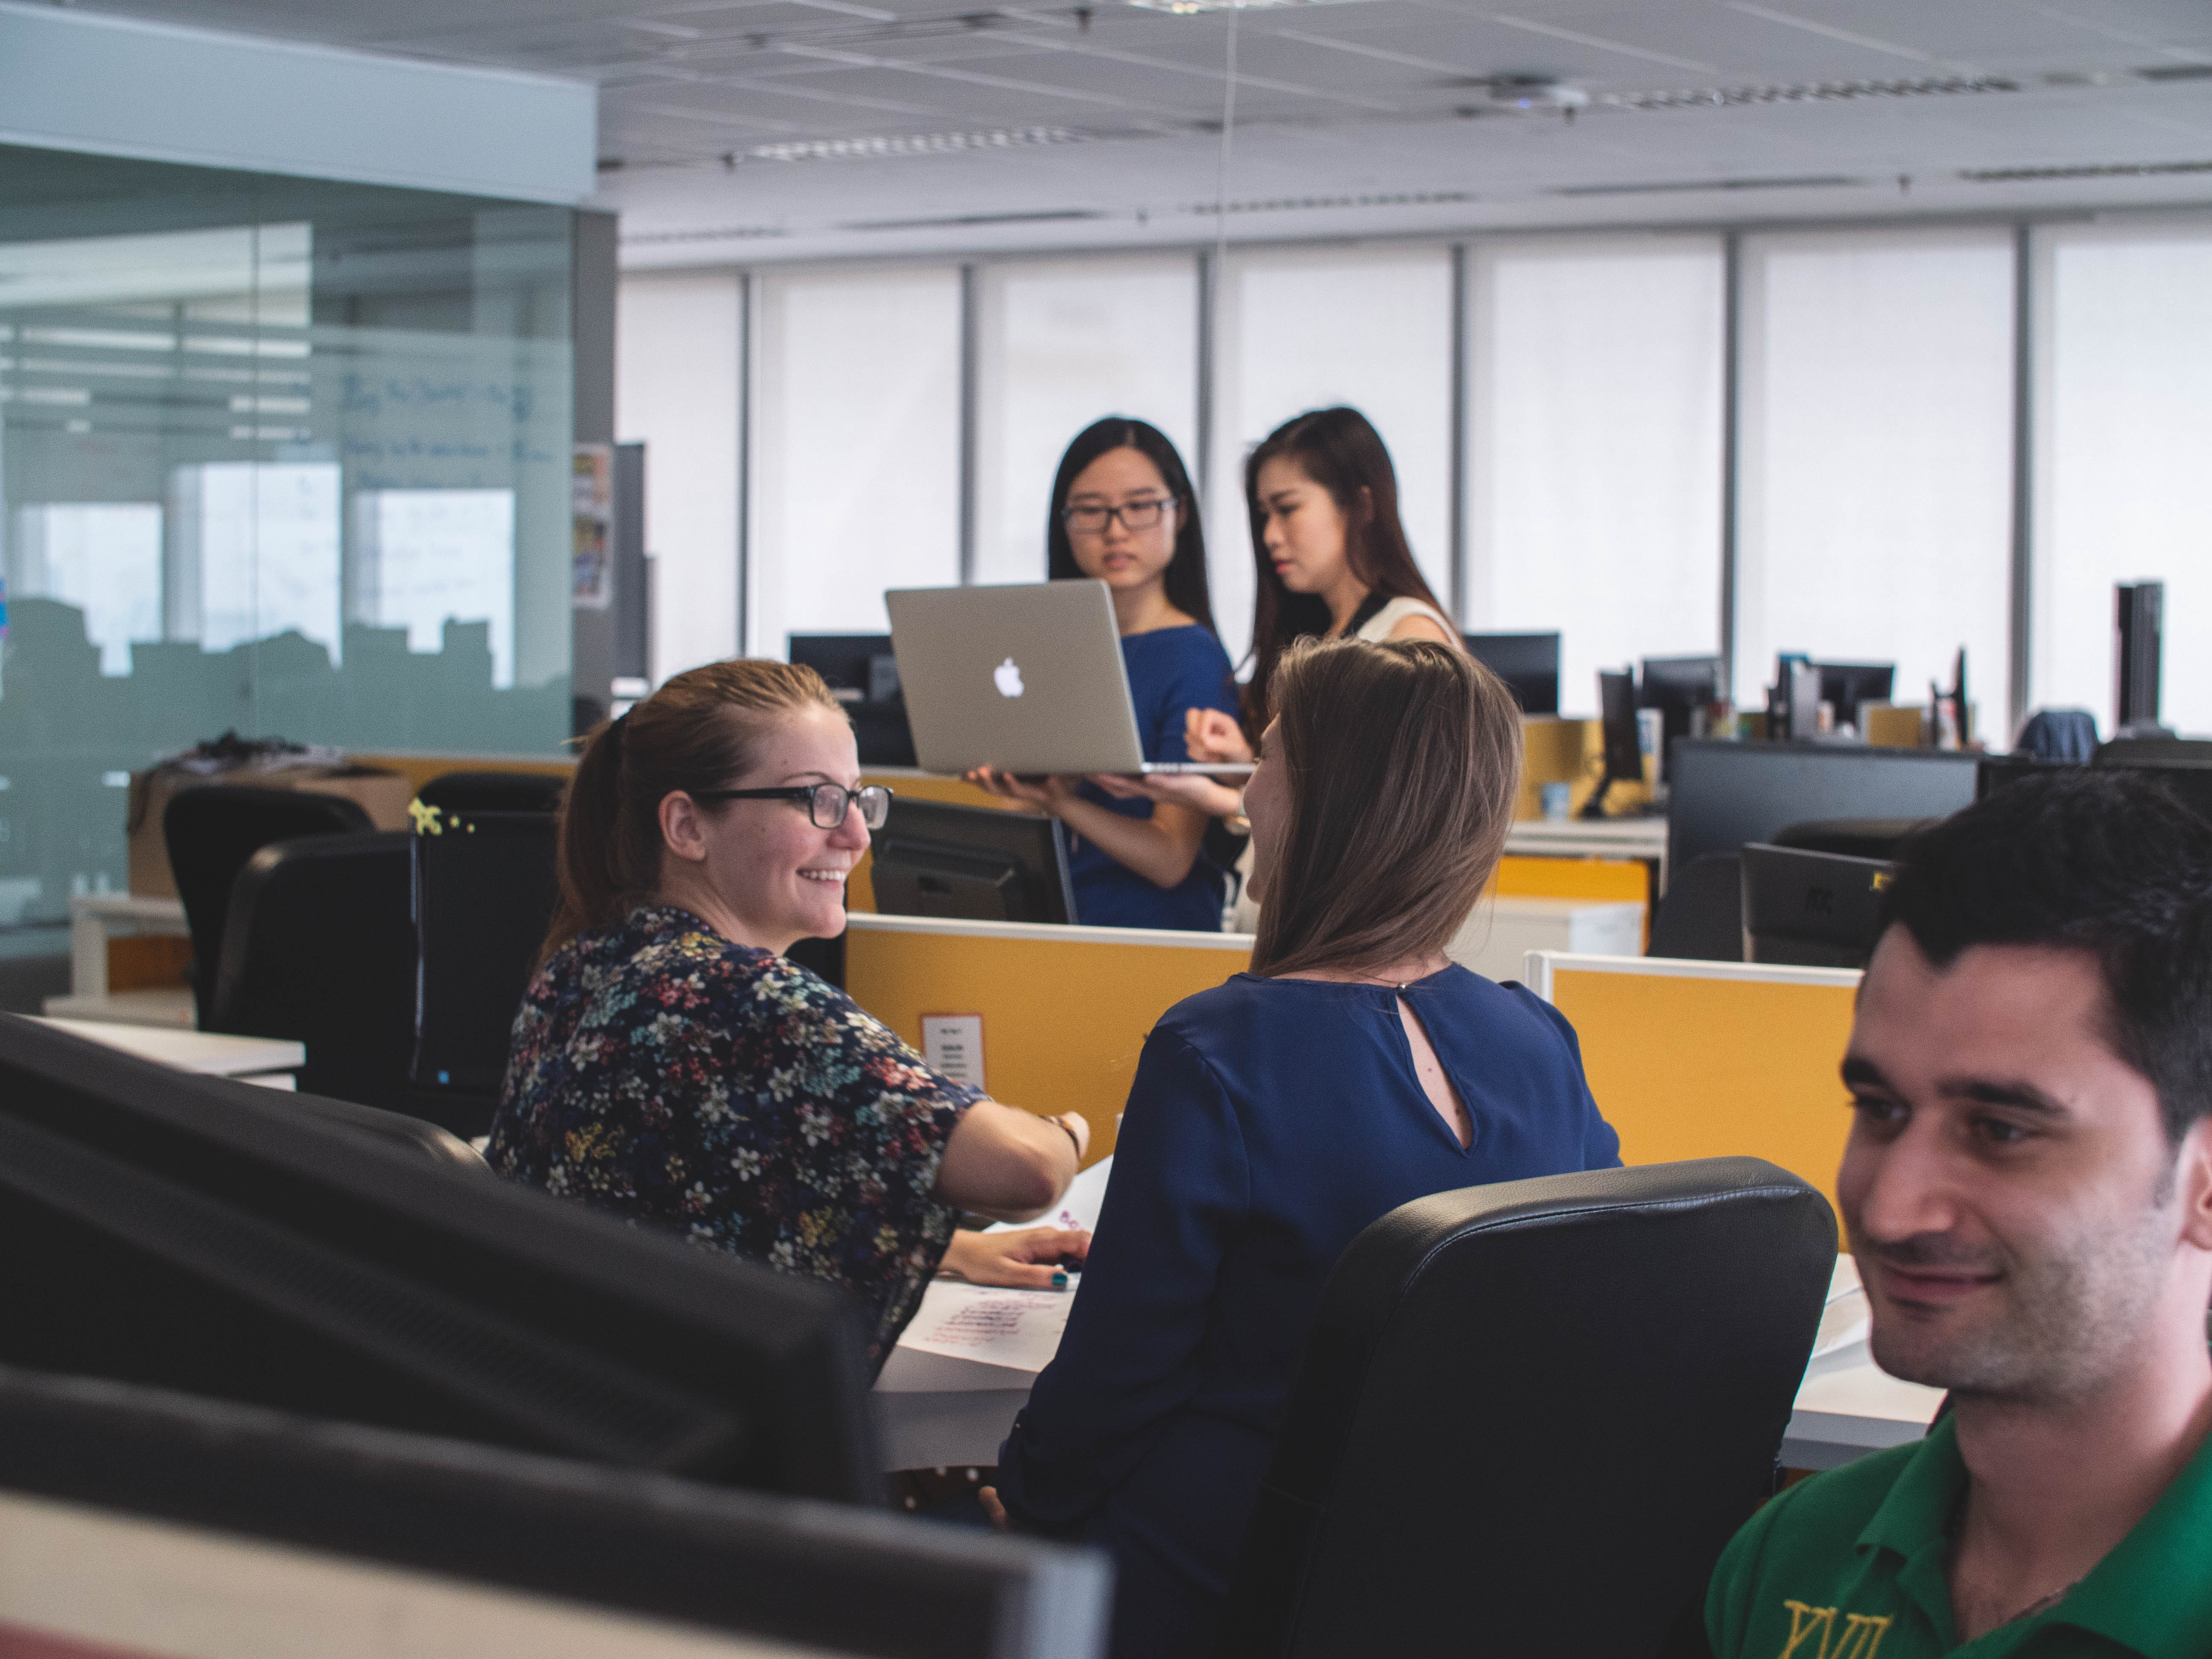 6 Effective Perks to Motivate Employees